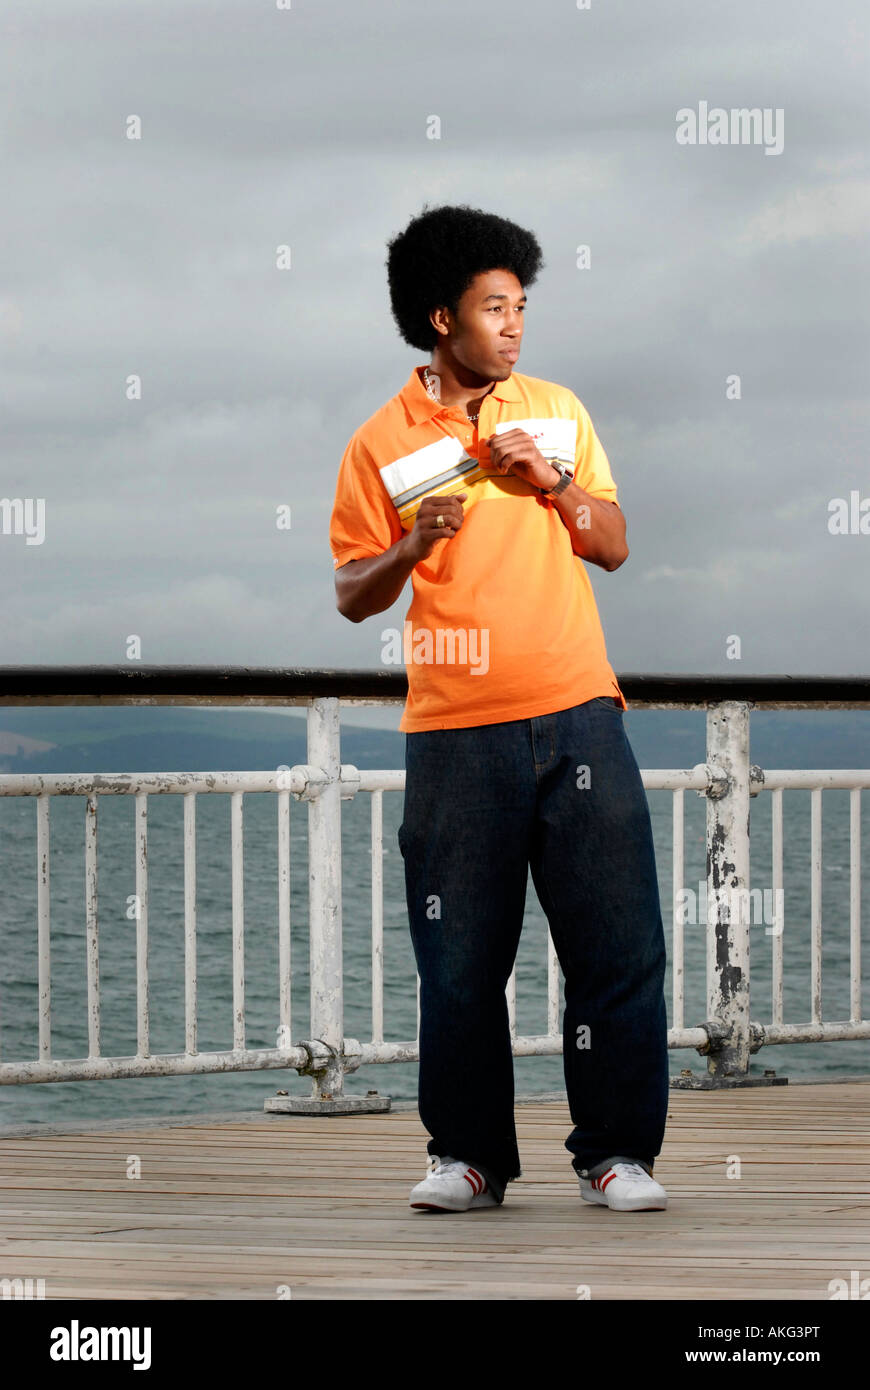 A young cool black man dancing at the end of Bournemouth Pier with the sea behind him. - Stock Image